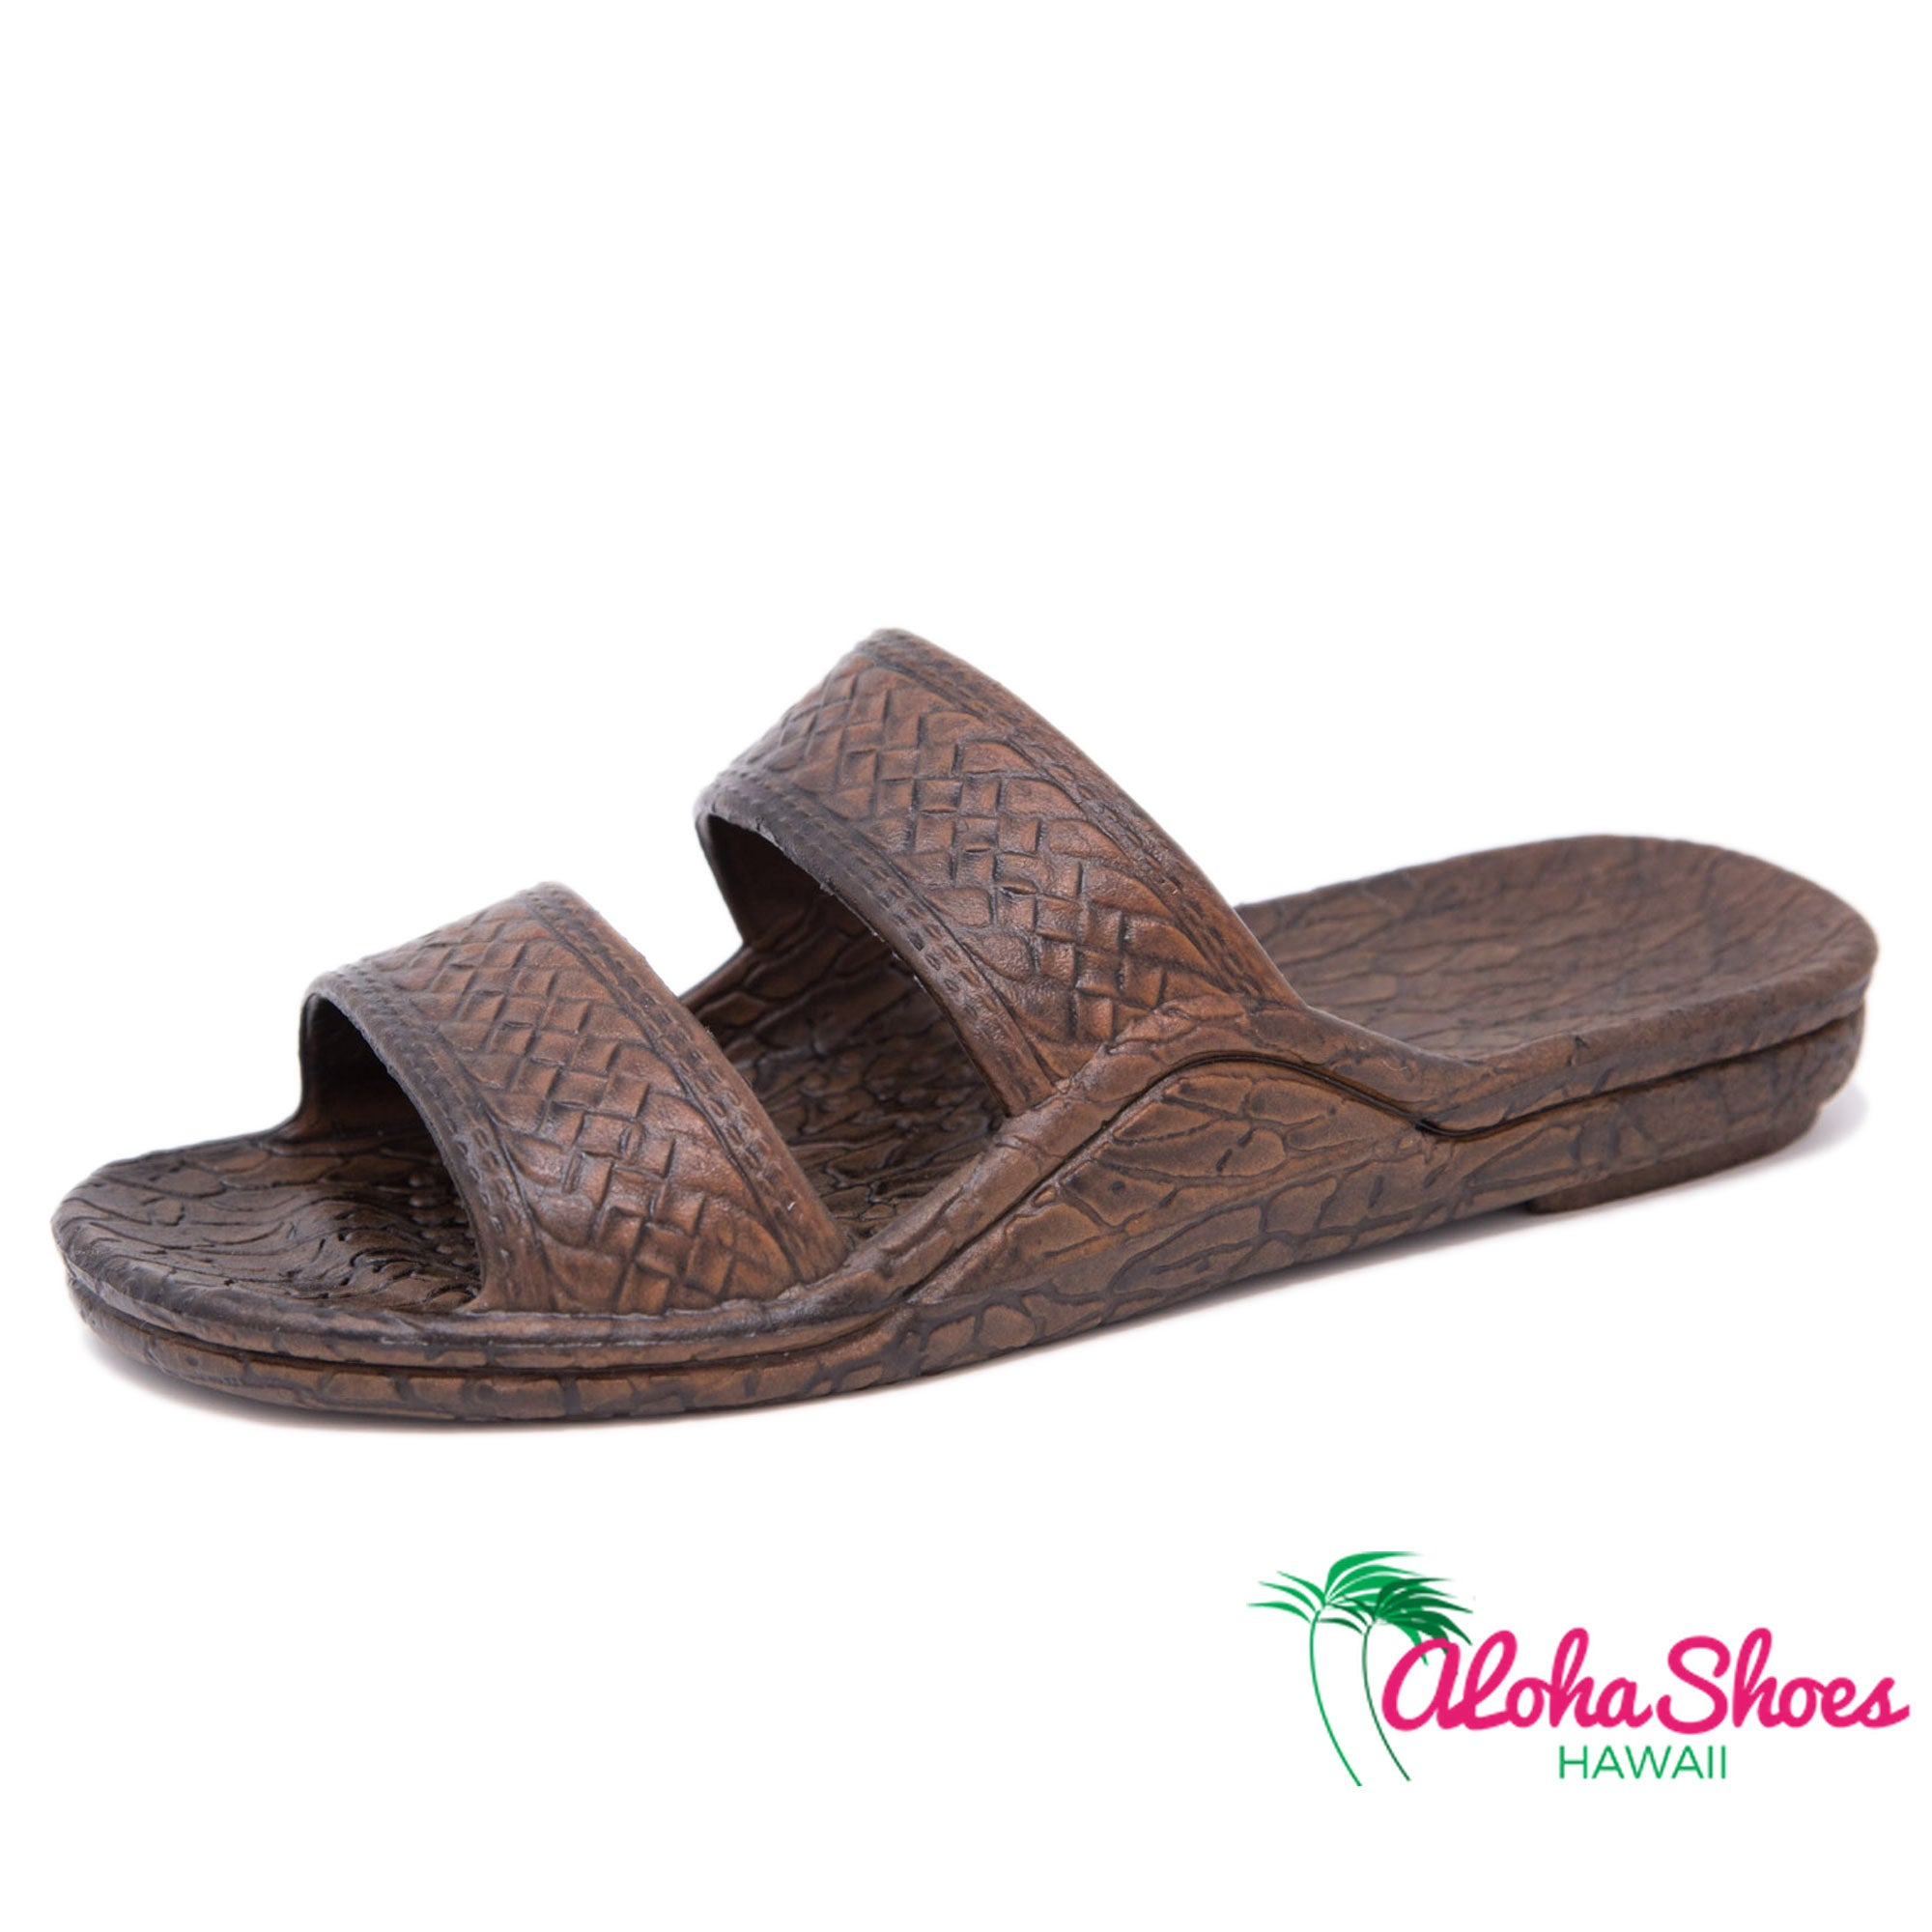 Dark Jesus Sandals From Hawaii at AlohaShoes.com